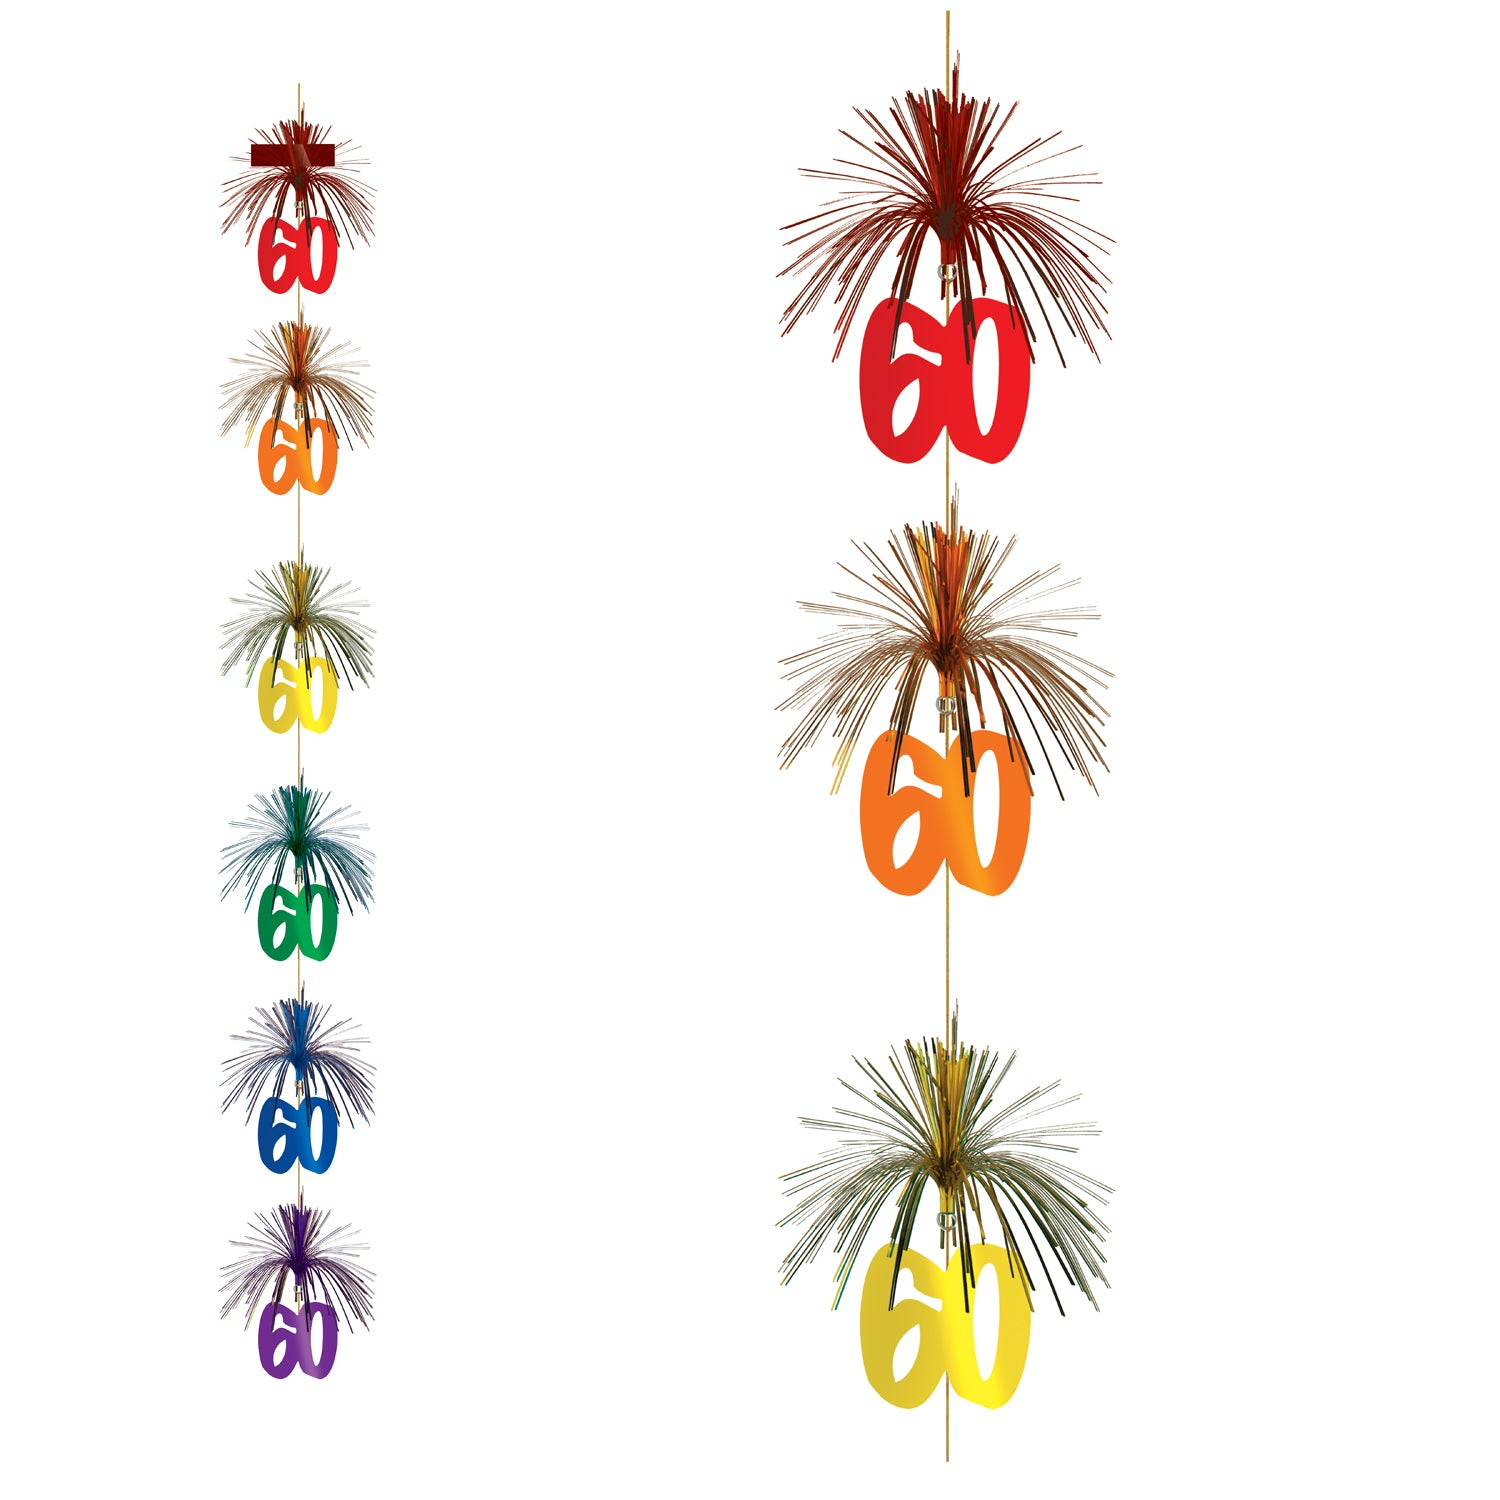 60 Firework Stringer by Beistle - 60th Birthday Party Decorations